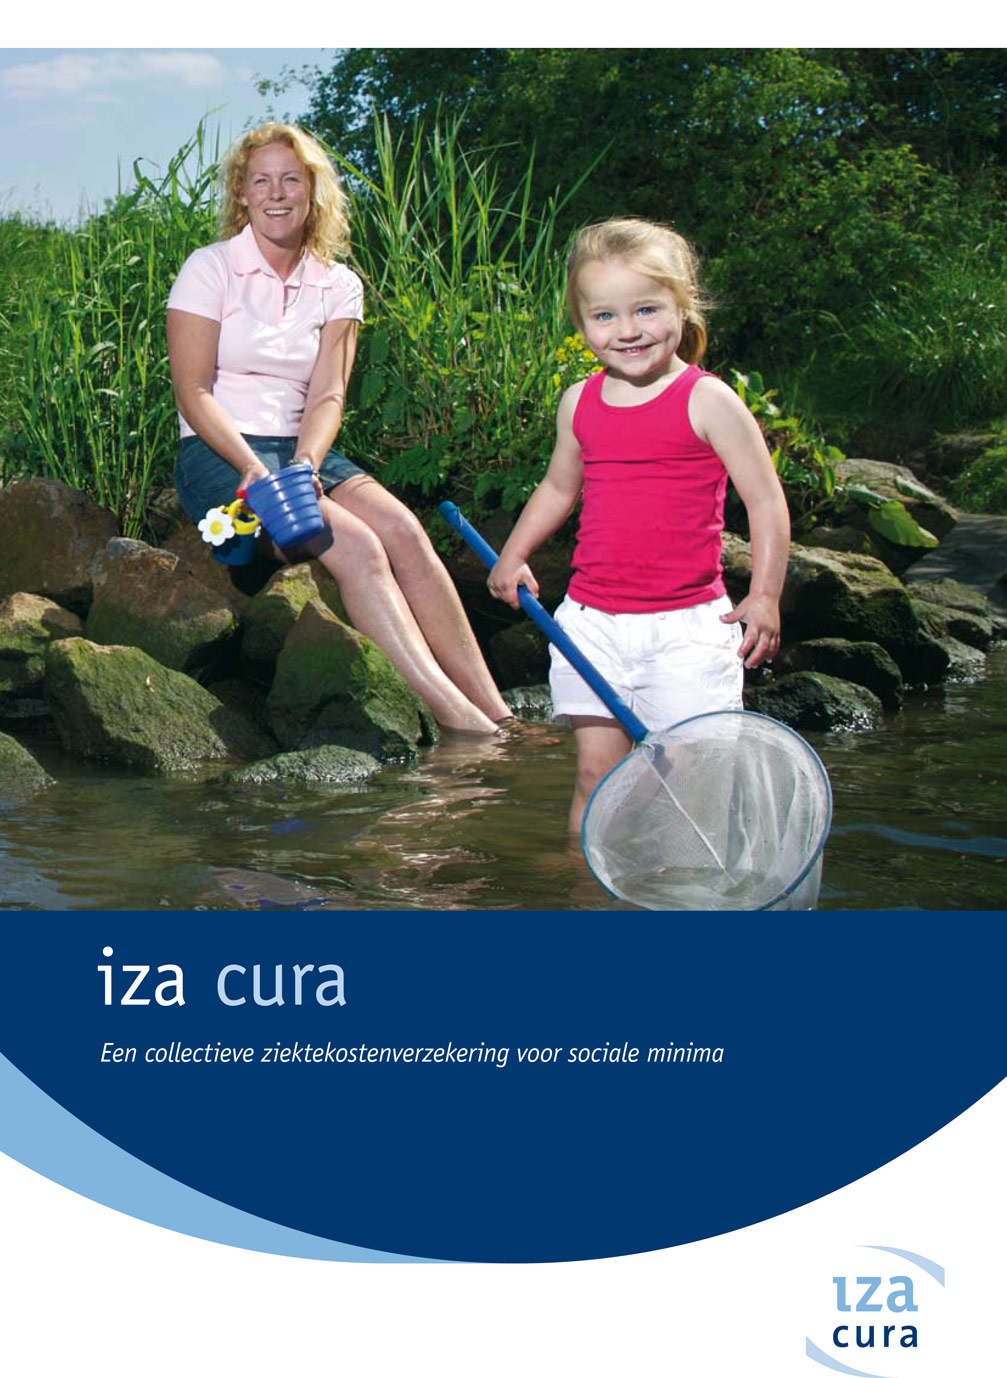 IZA-CURA_Collectiviteiten_web.jpg